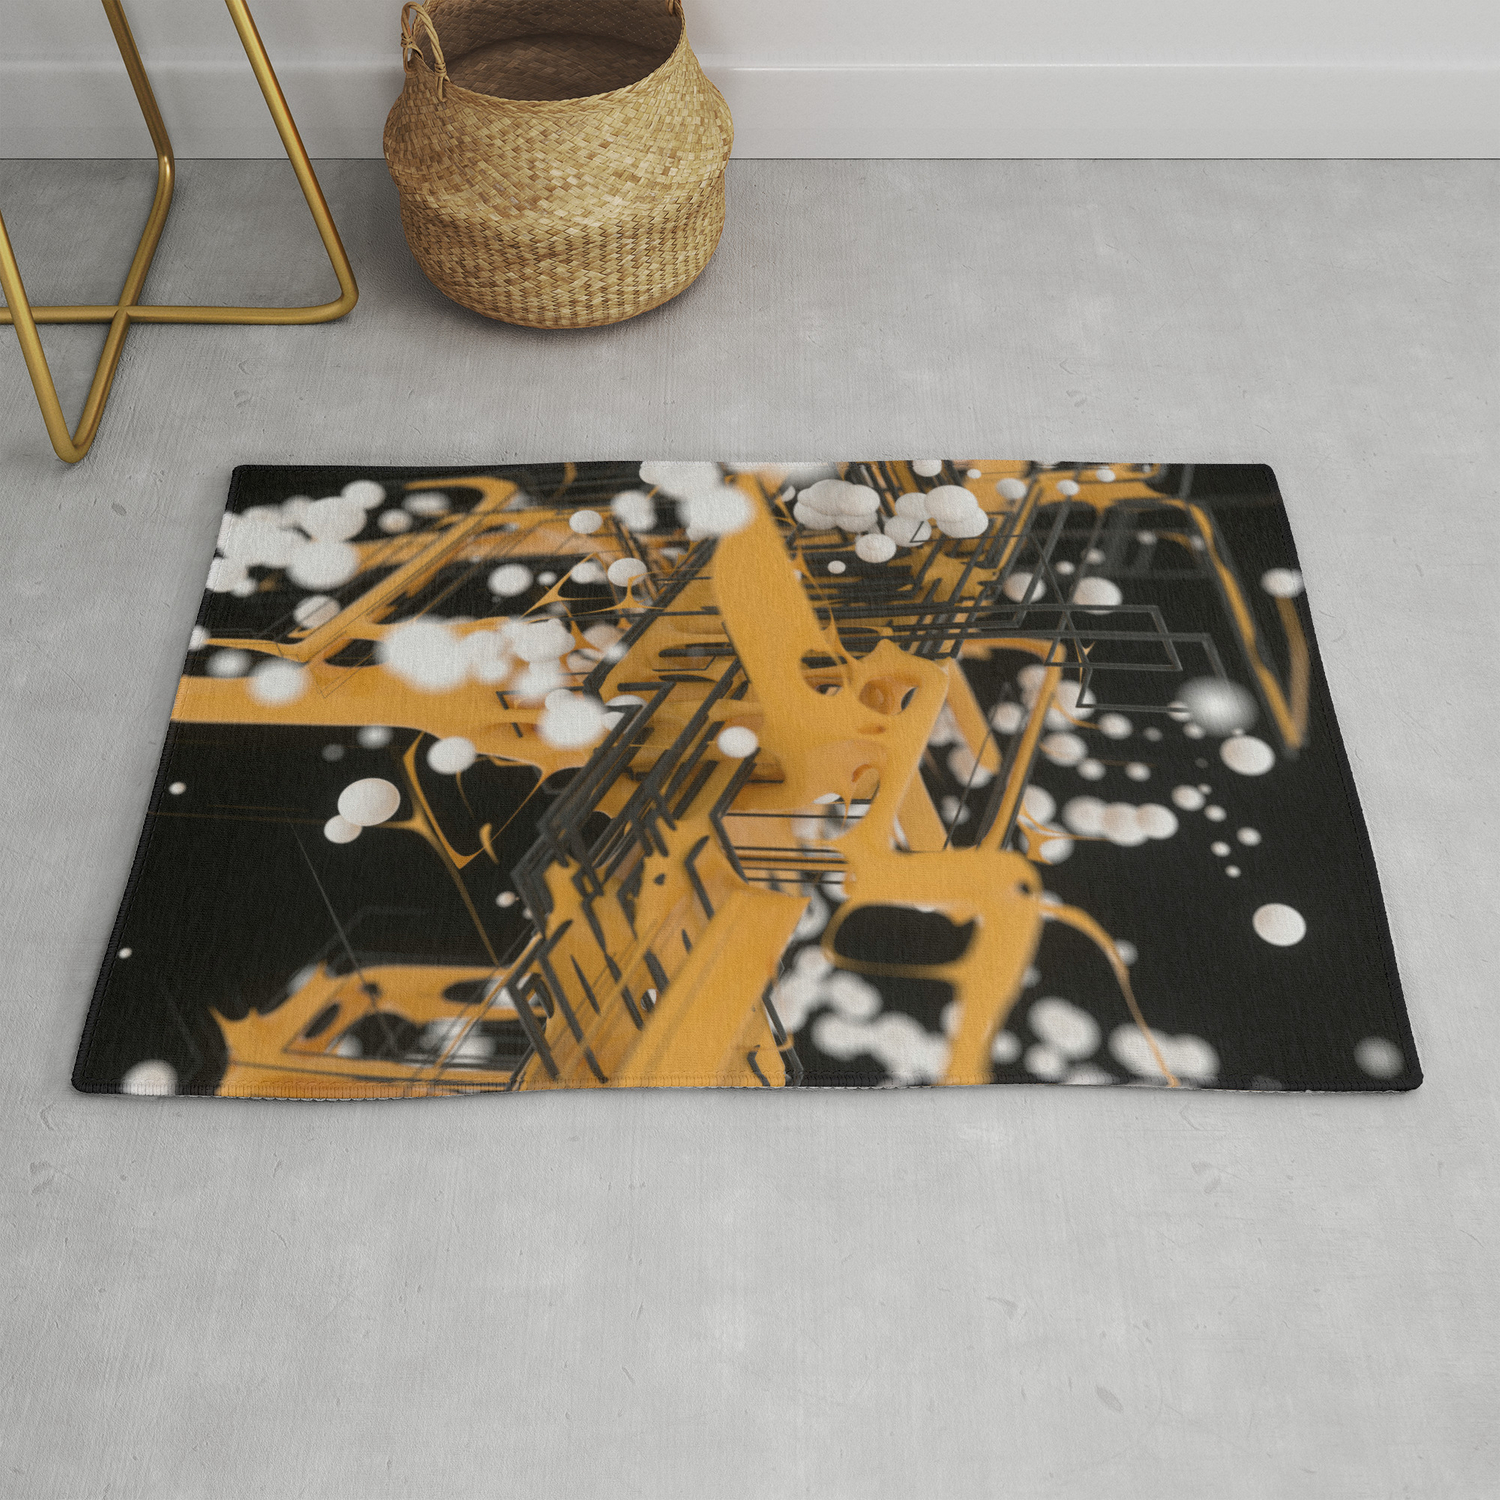 Data Network Rug By Dannyivan